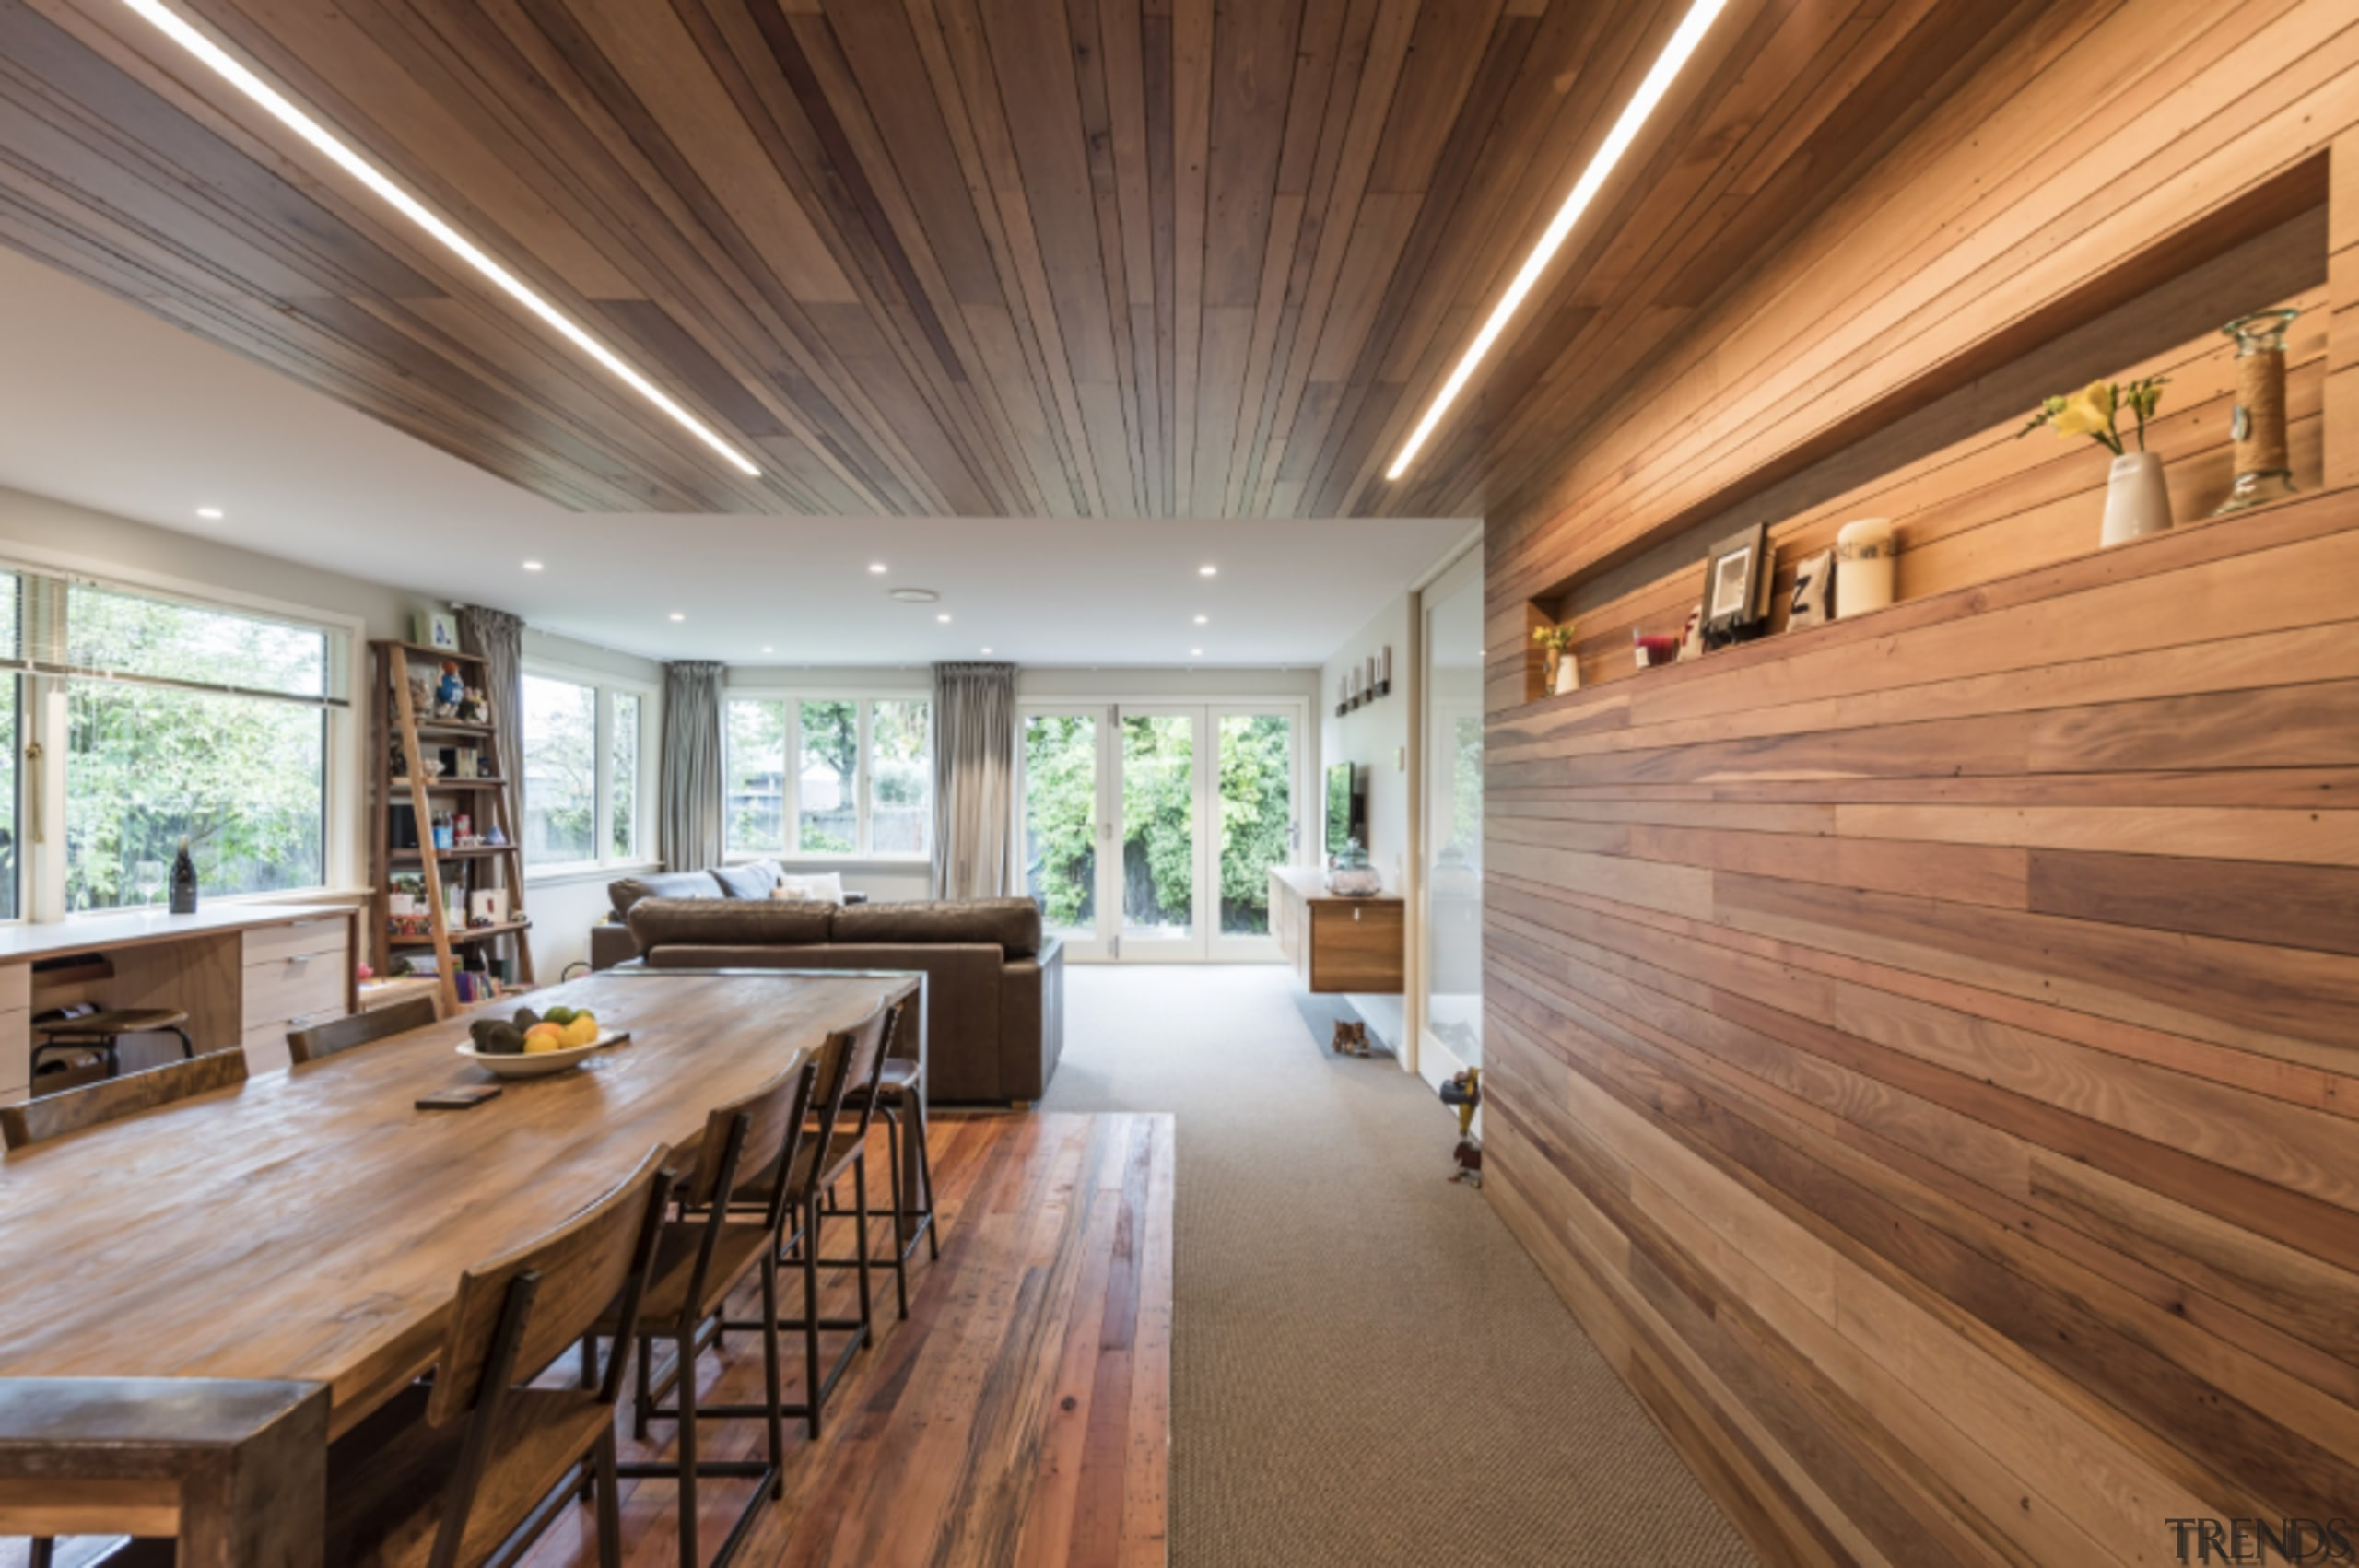 See more here architecture, ceiling, daylighting, estate, flooring, hardwood, home, house, interior design, living room, property, real estate, wood, wood flooring, brown